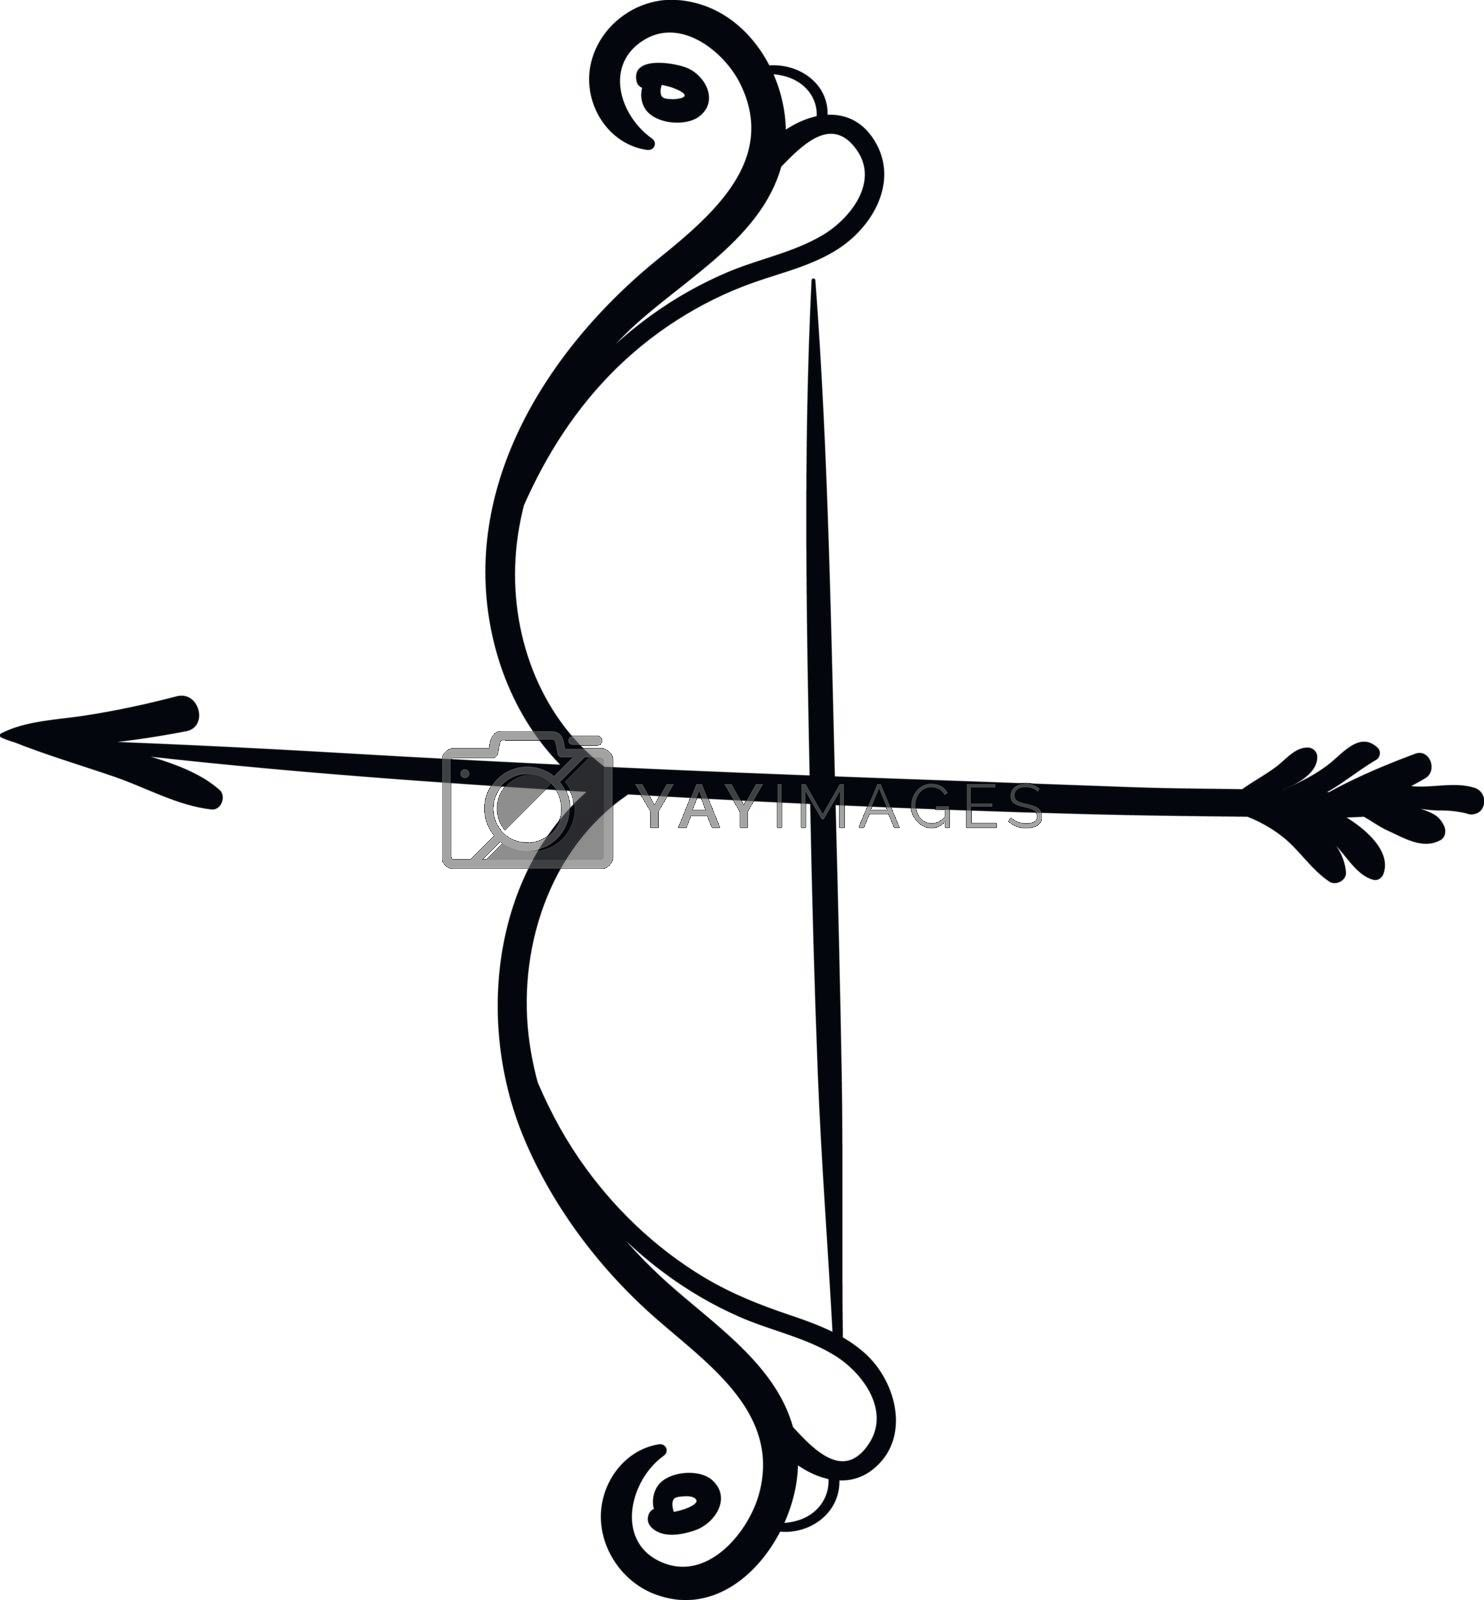 Royalty free image of Silhouette of bow and arrow vector or color illustration by Morphart